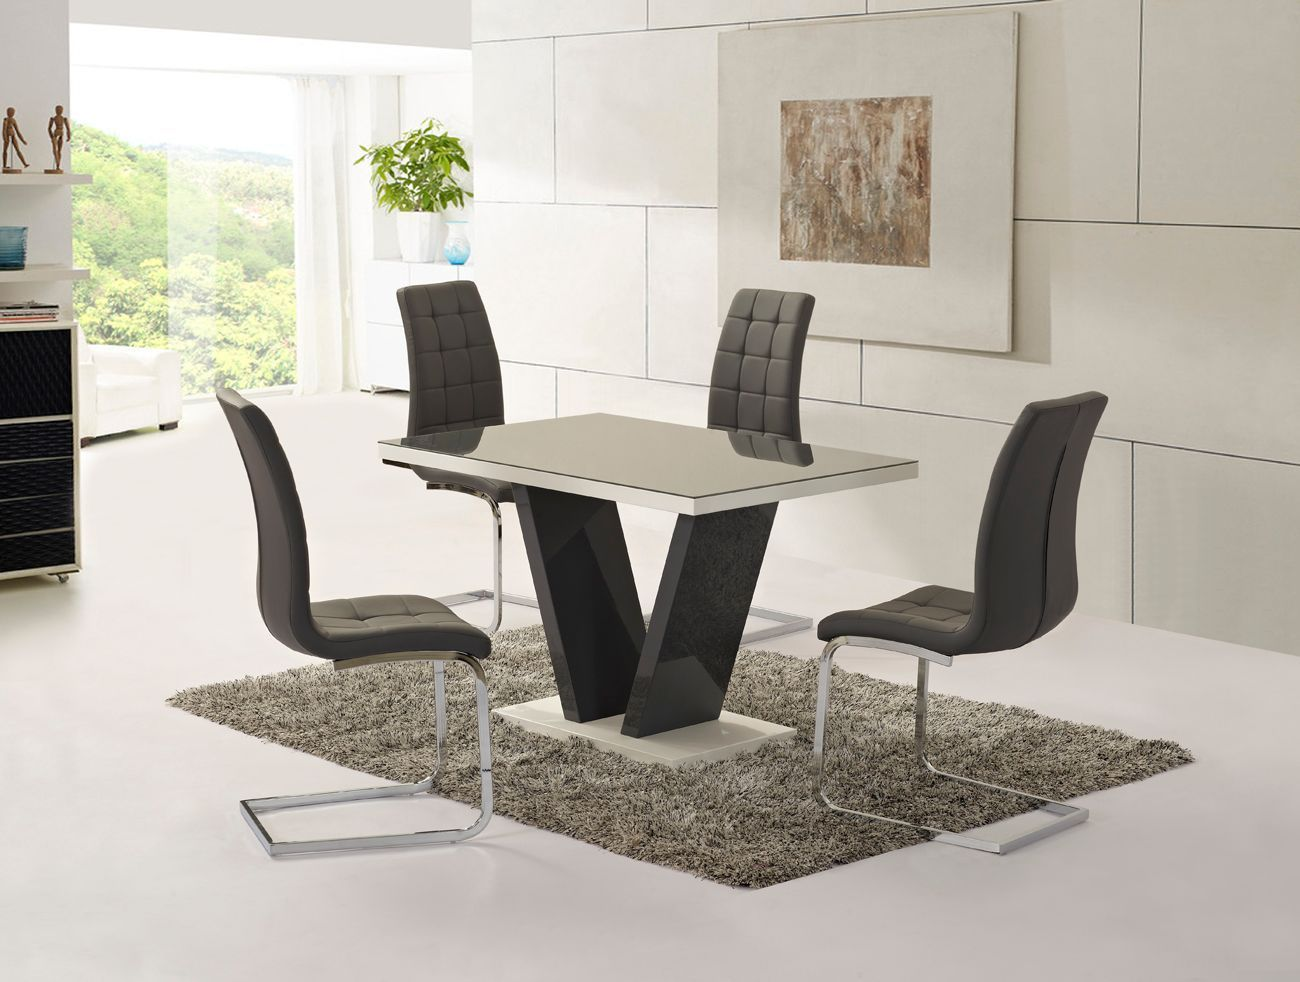 Grey glass high gloss dining table and 4 chairs set  : Greyhighglossdiningtableand4greychairsset Homegenies from www.homegenies.co.uk size 1300 x 982 jpeg 138kB